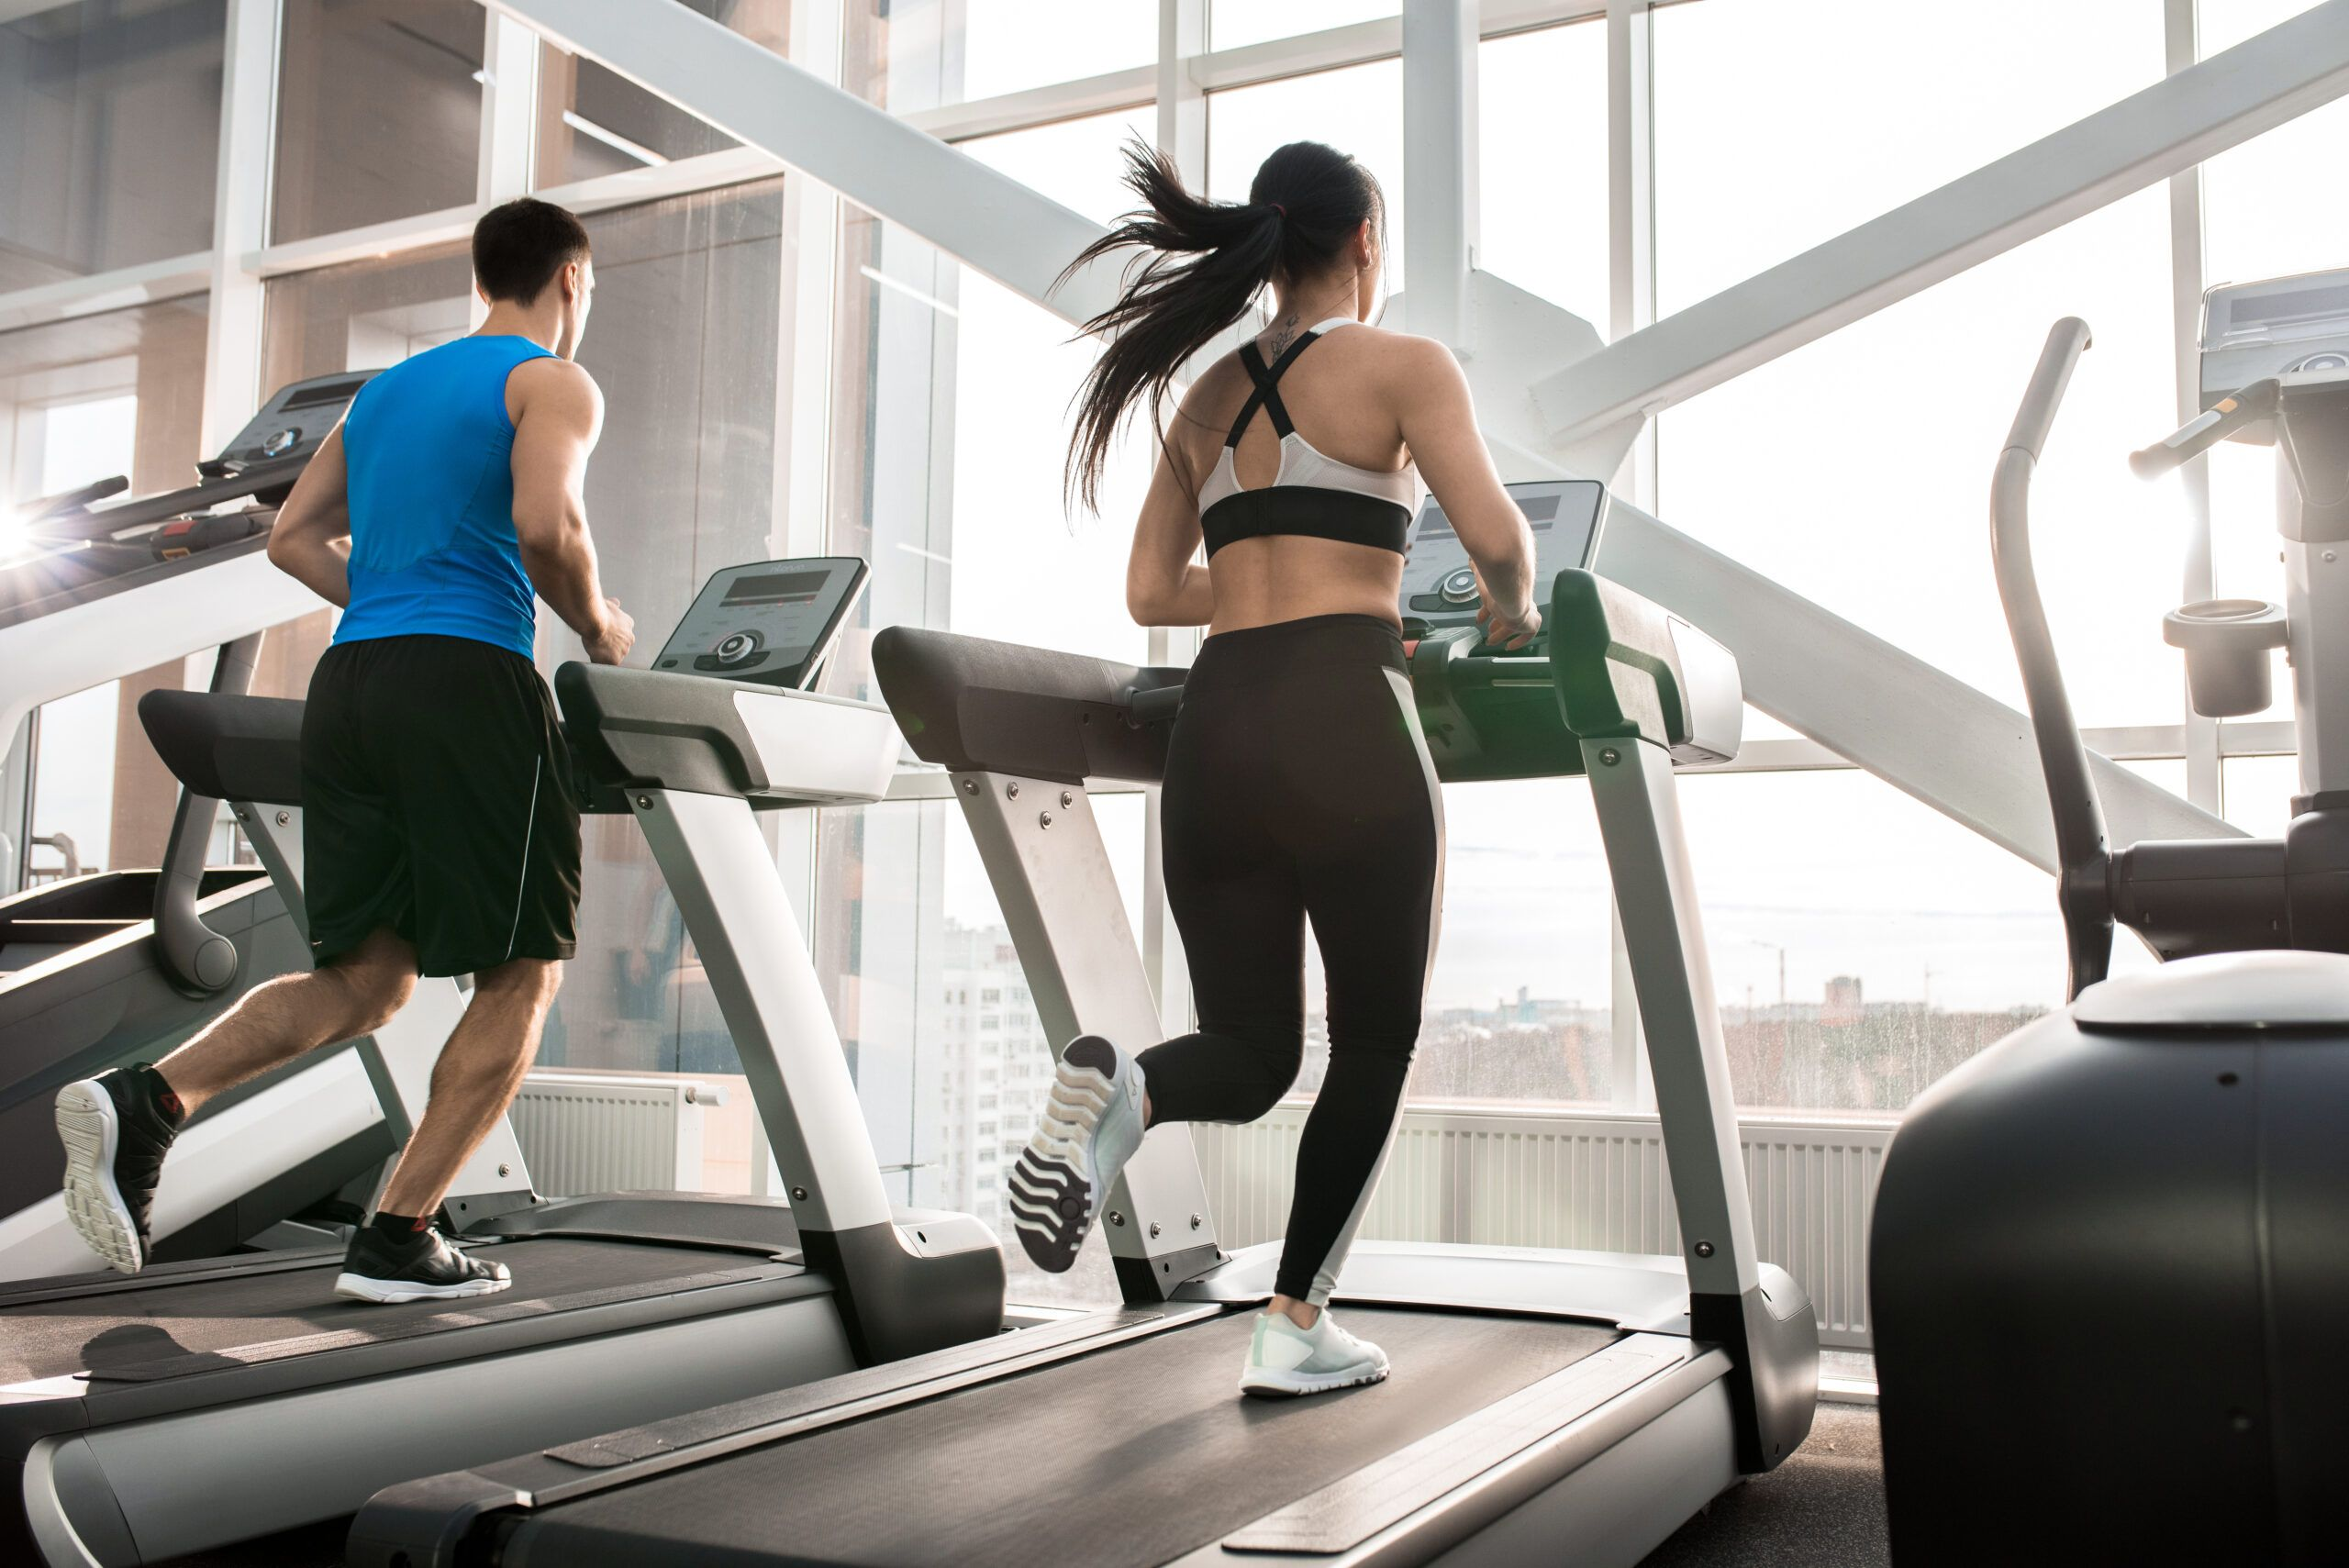 The Best Ways to Save Money on Gym Memberships | WalletGenius